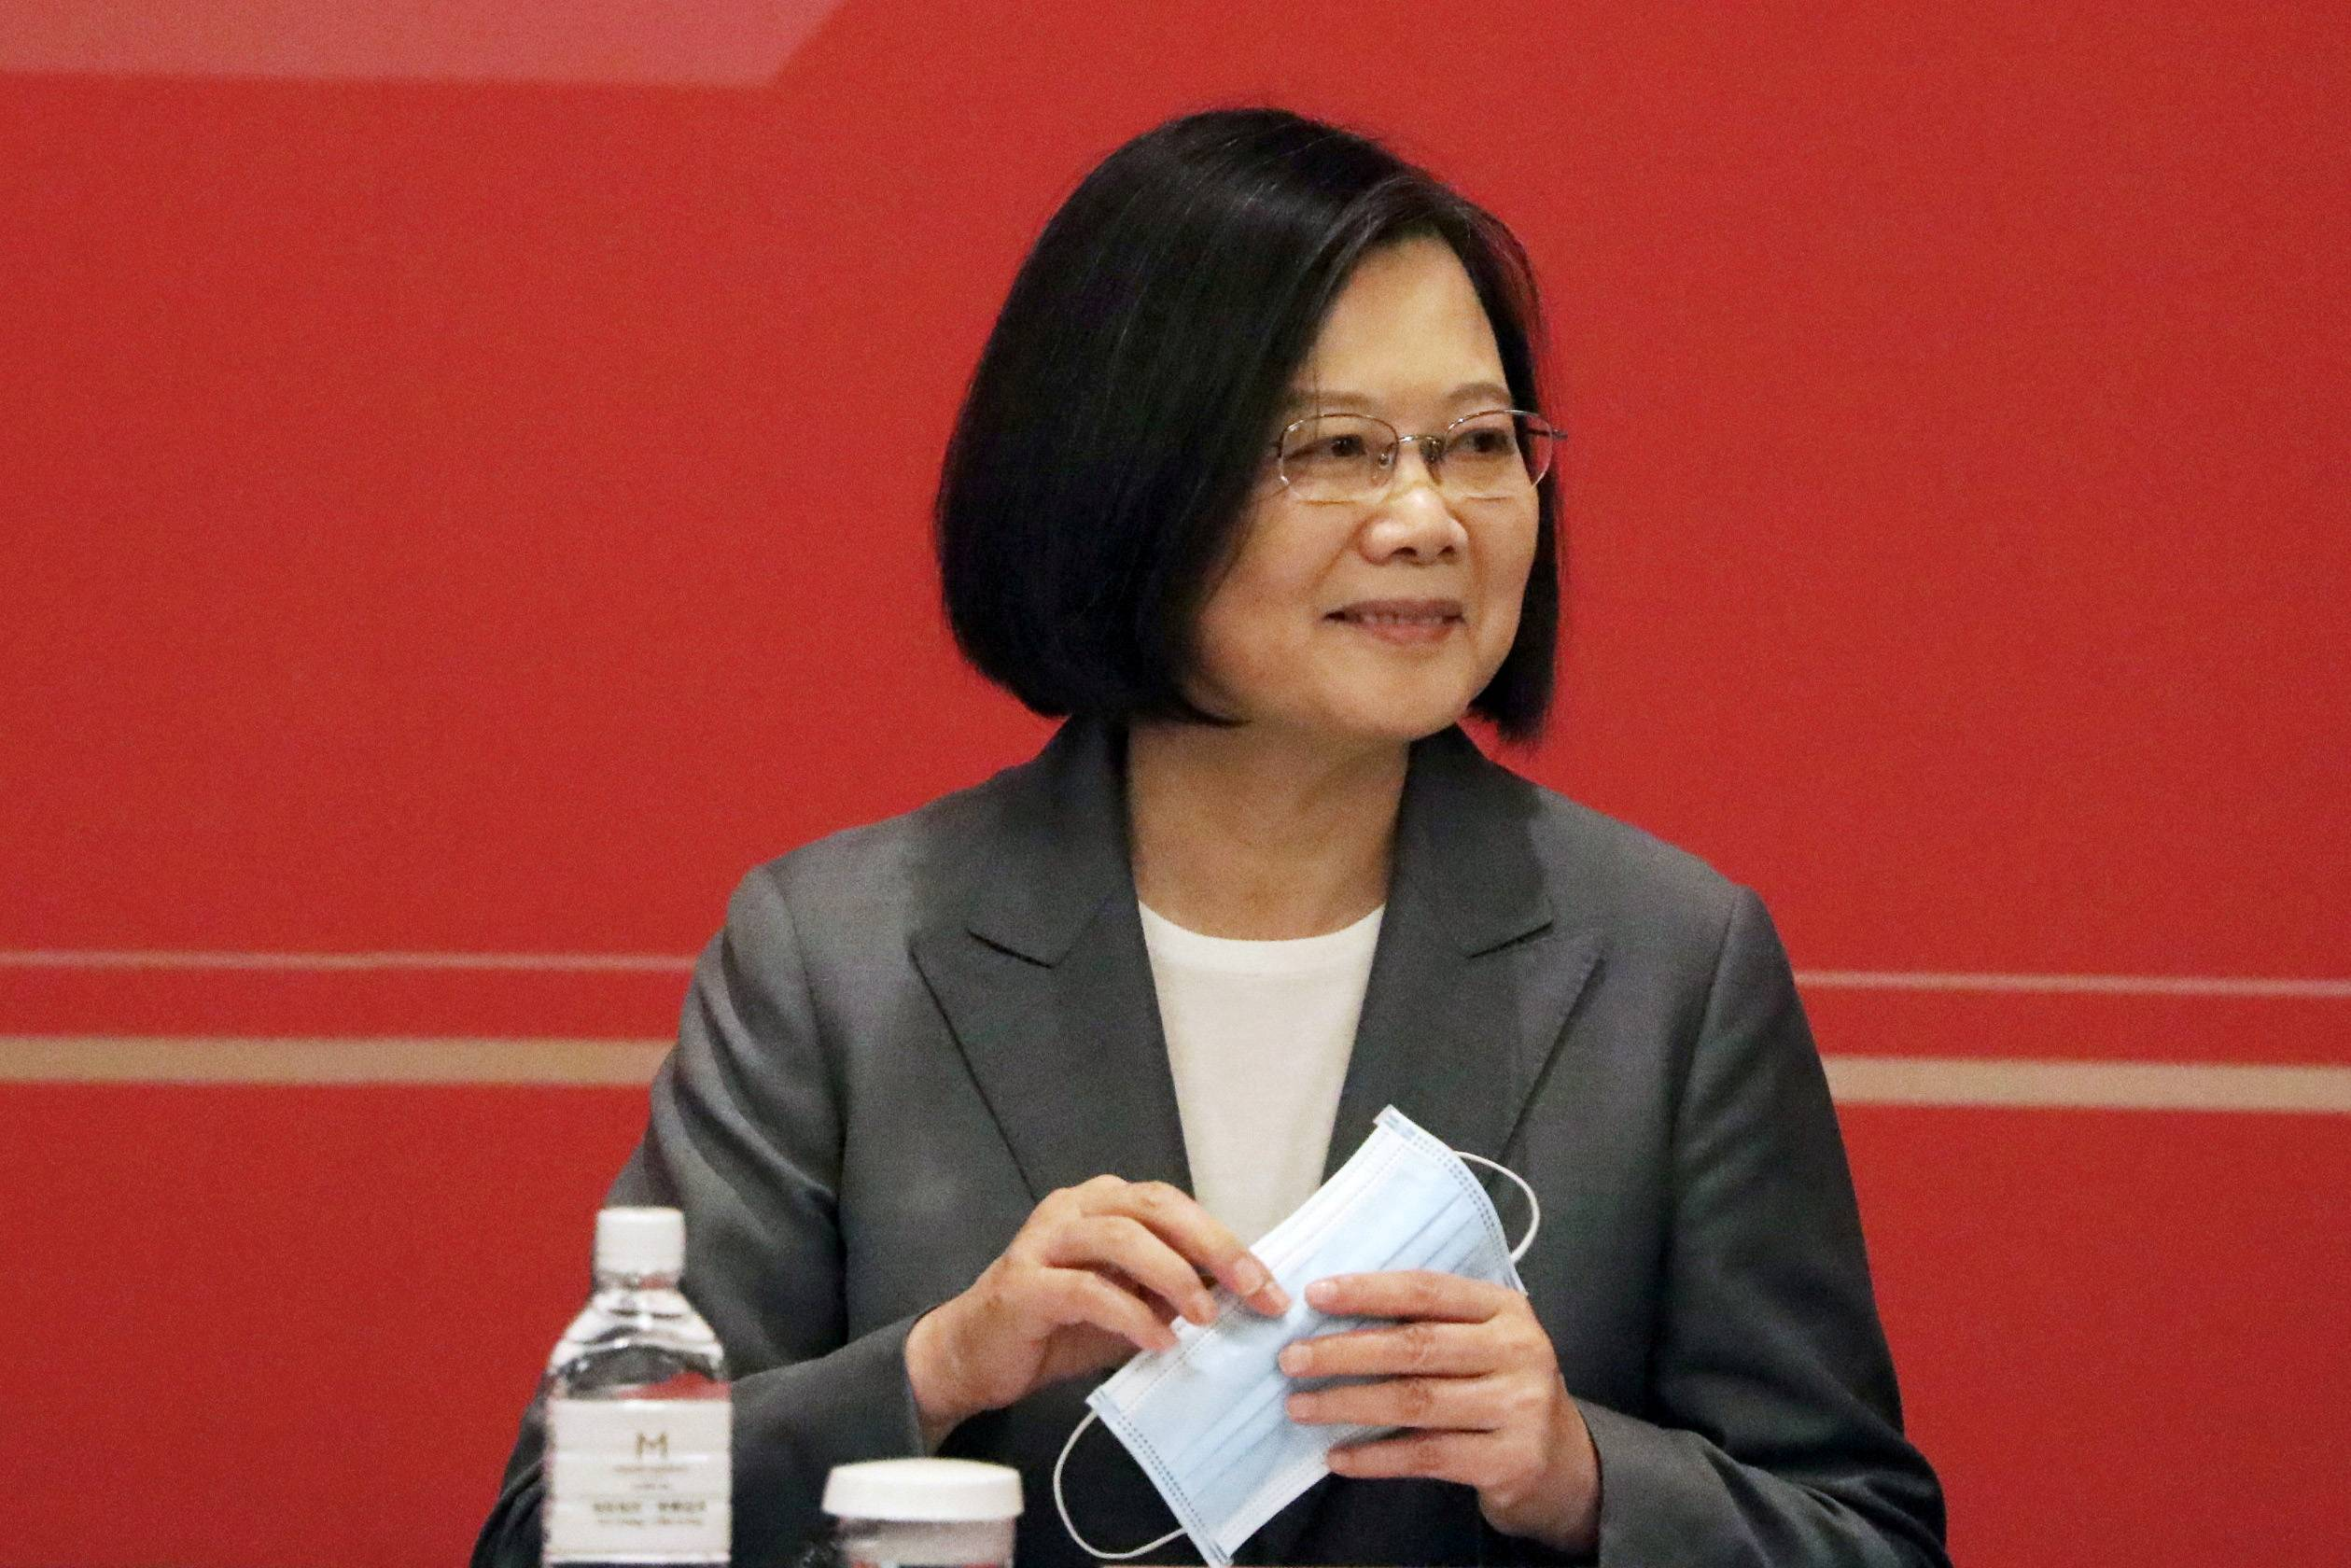 China has been ramping up diplomatic pressure on Taiwan since the democratically ruled island elected President Tsai Ing-wen in 2016, a vocal critic of the Communist Party in Beijing and a supporter of protesters in Hong Kong. | REUTERS